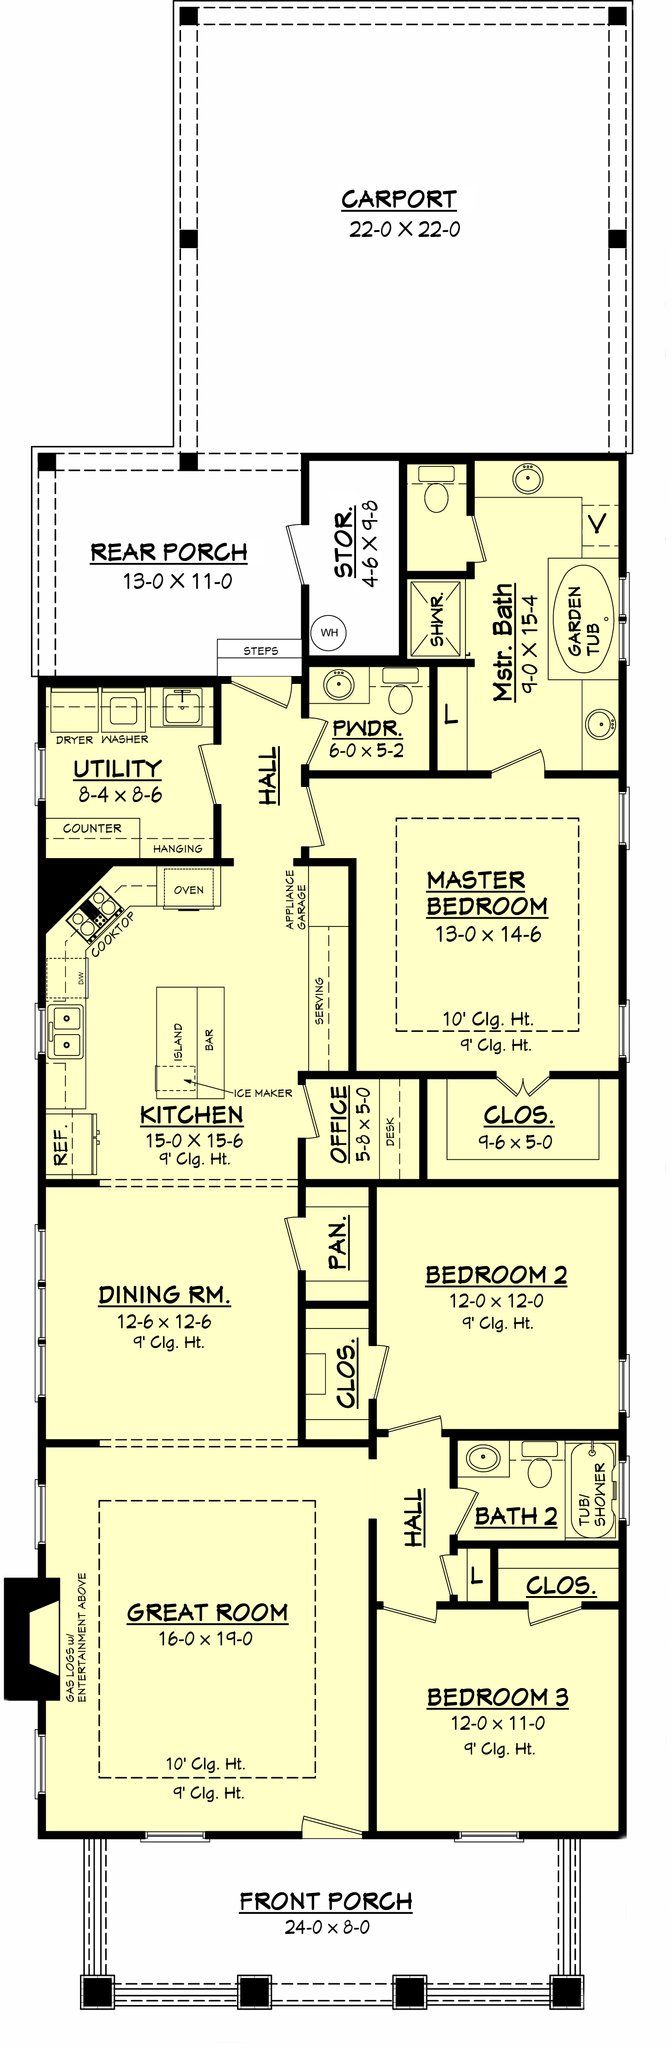 Best 25 2 bedroom house plans ideas that you will like on old decatur house plan jameslax Choice Image